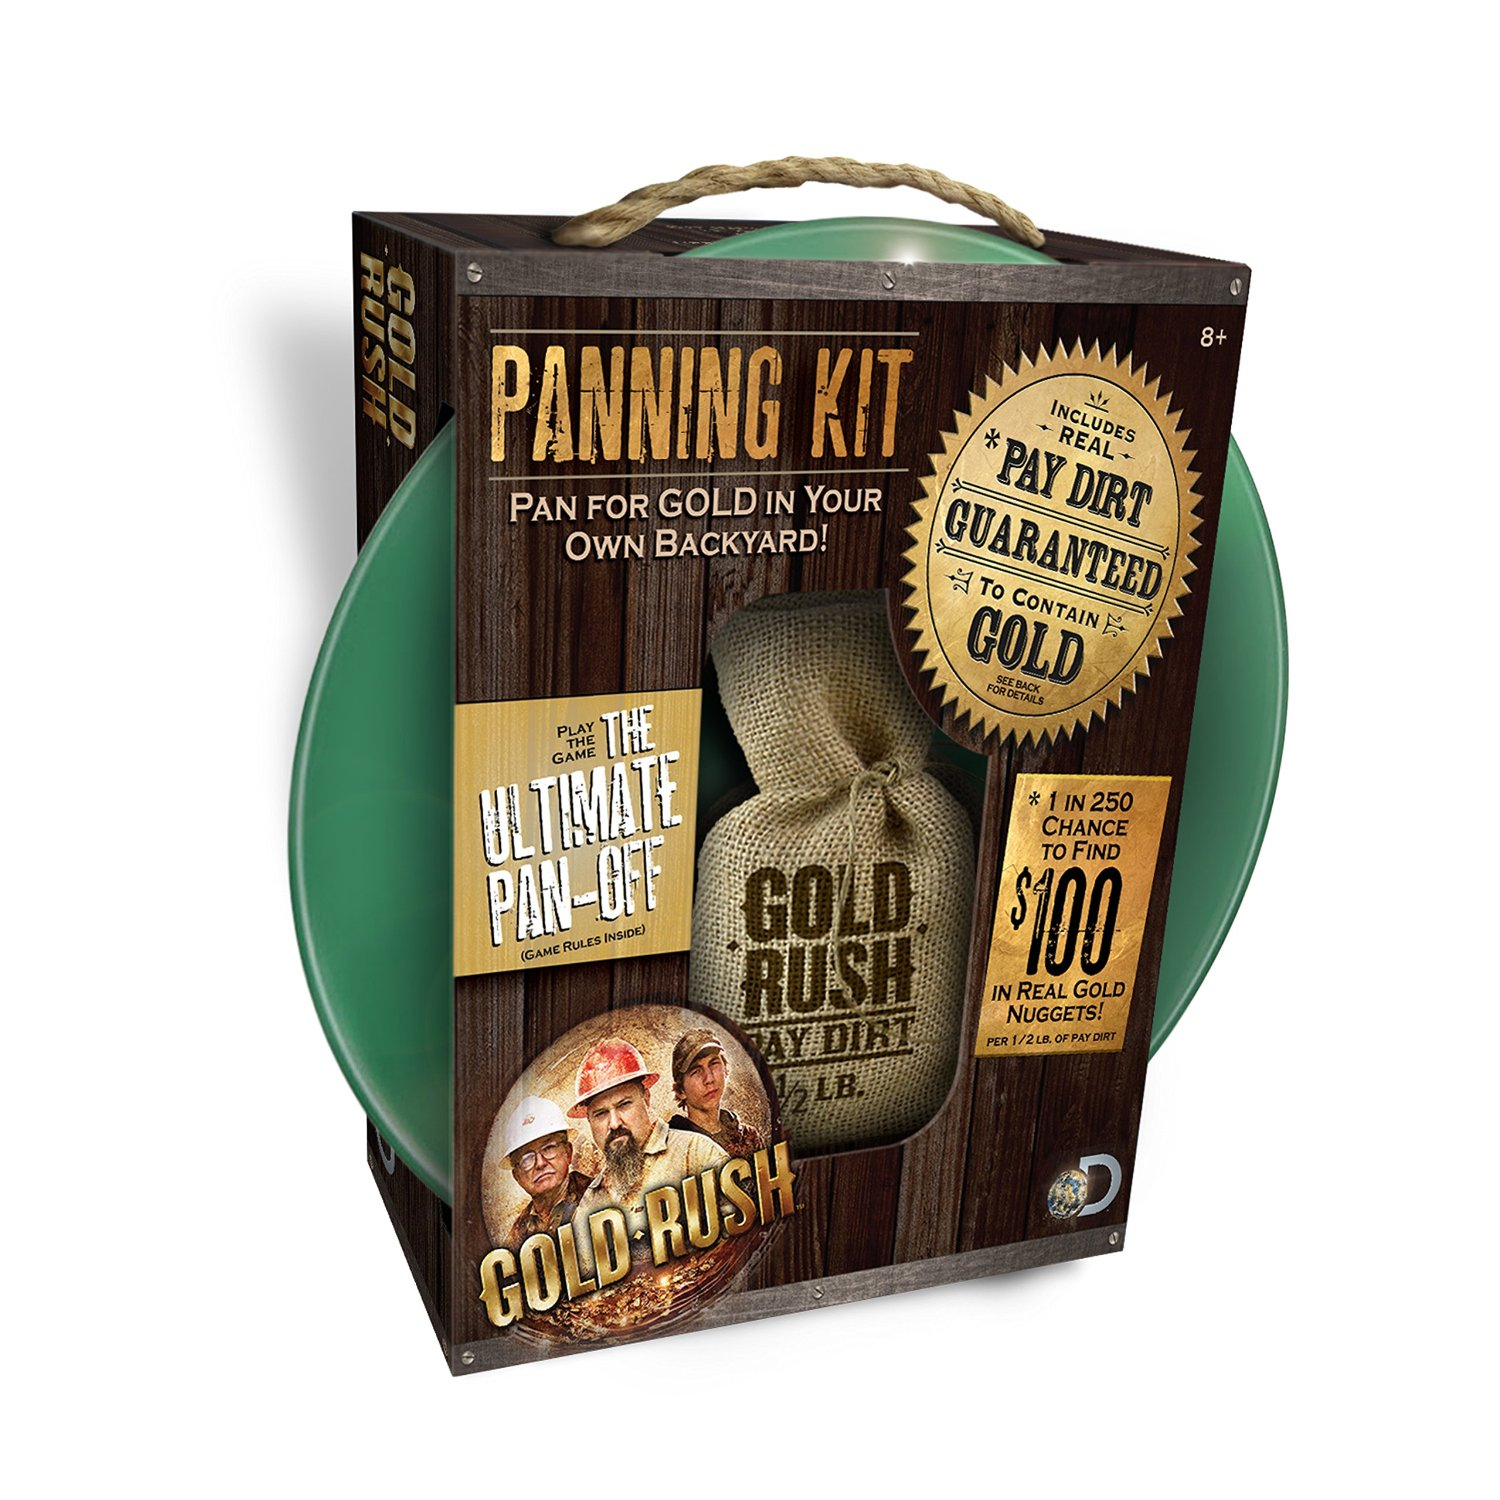 Gold Rush Panning Kit: $29.99